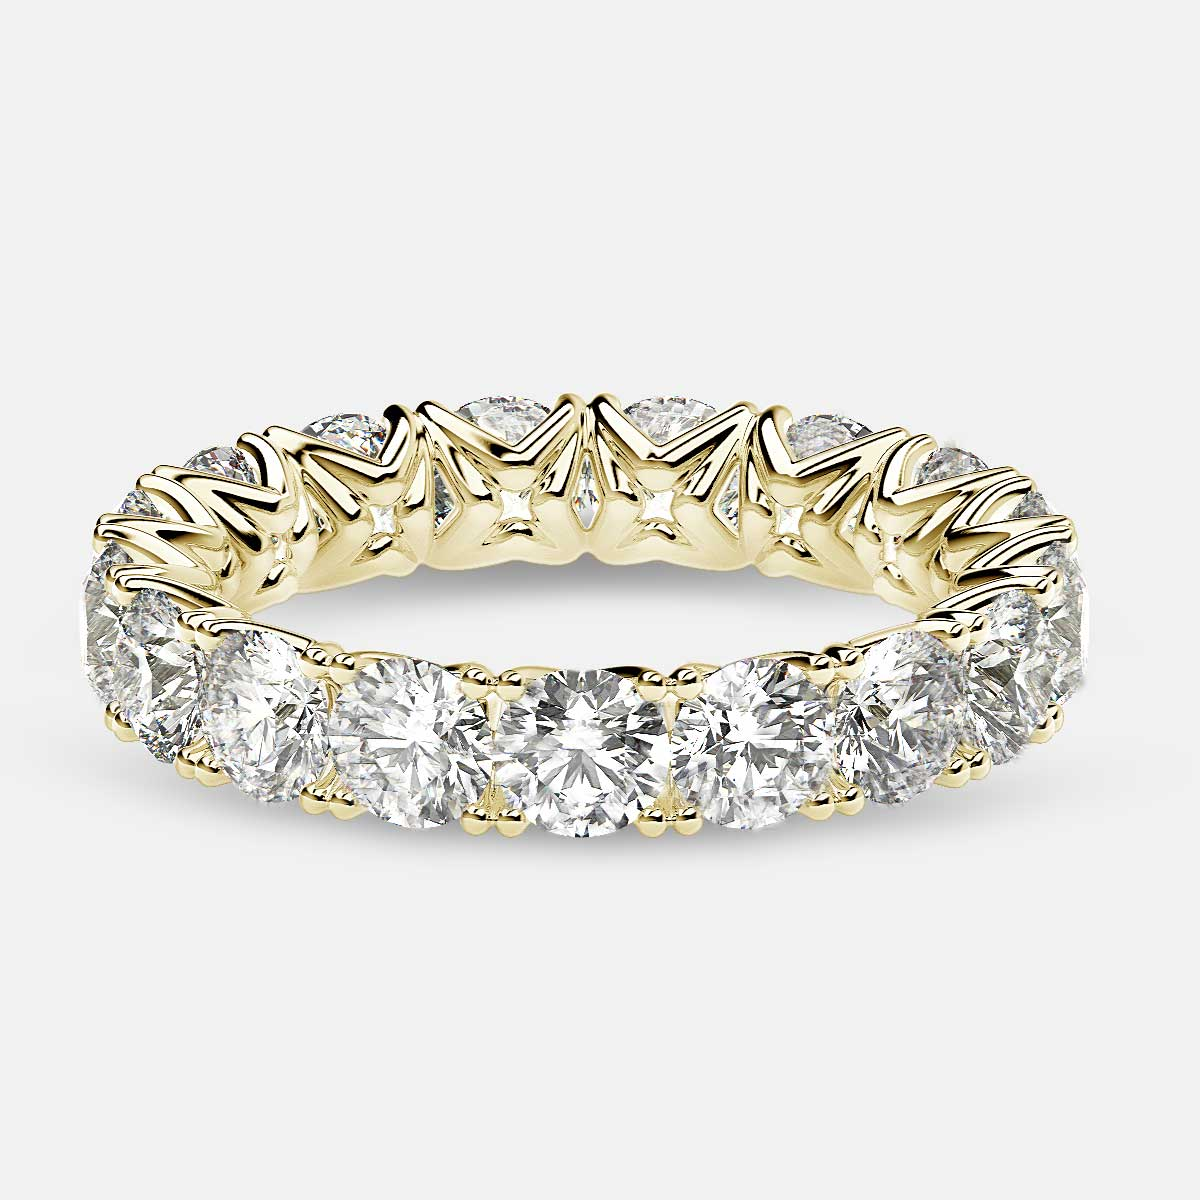 Curved V-Prong Eternity Ring with Round Diamonds in 18k Yellow Gold